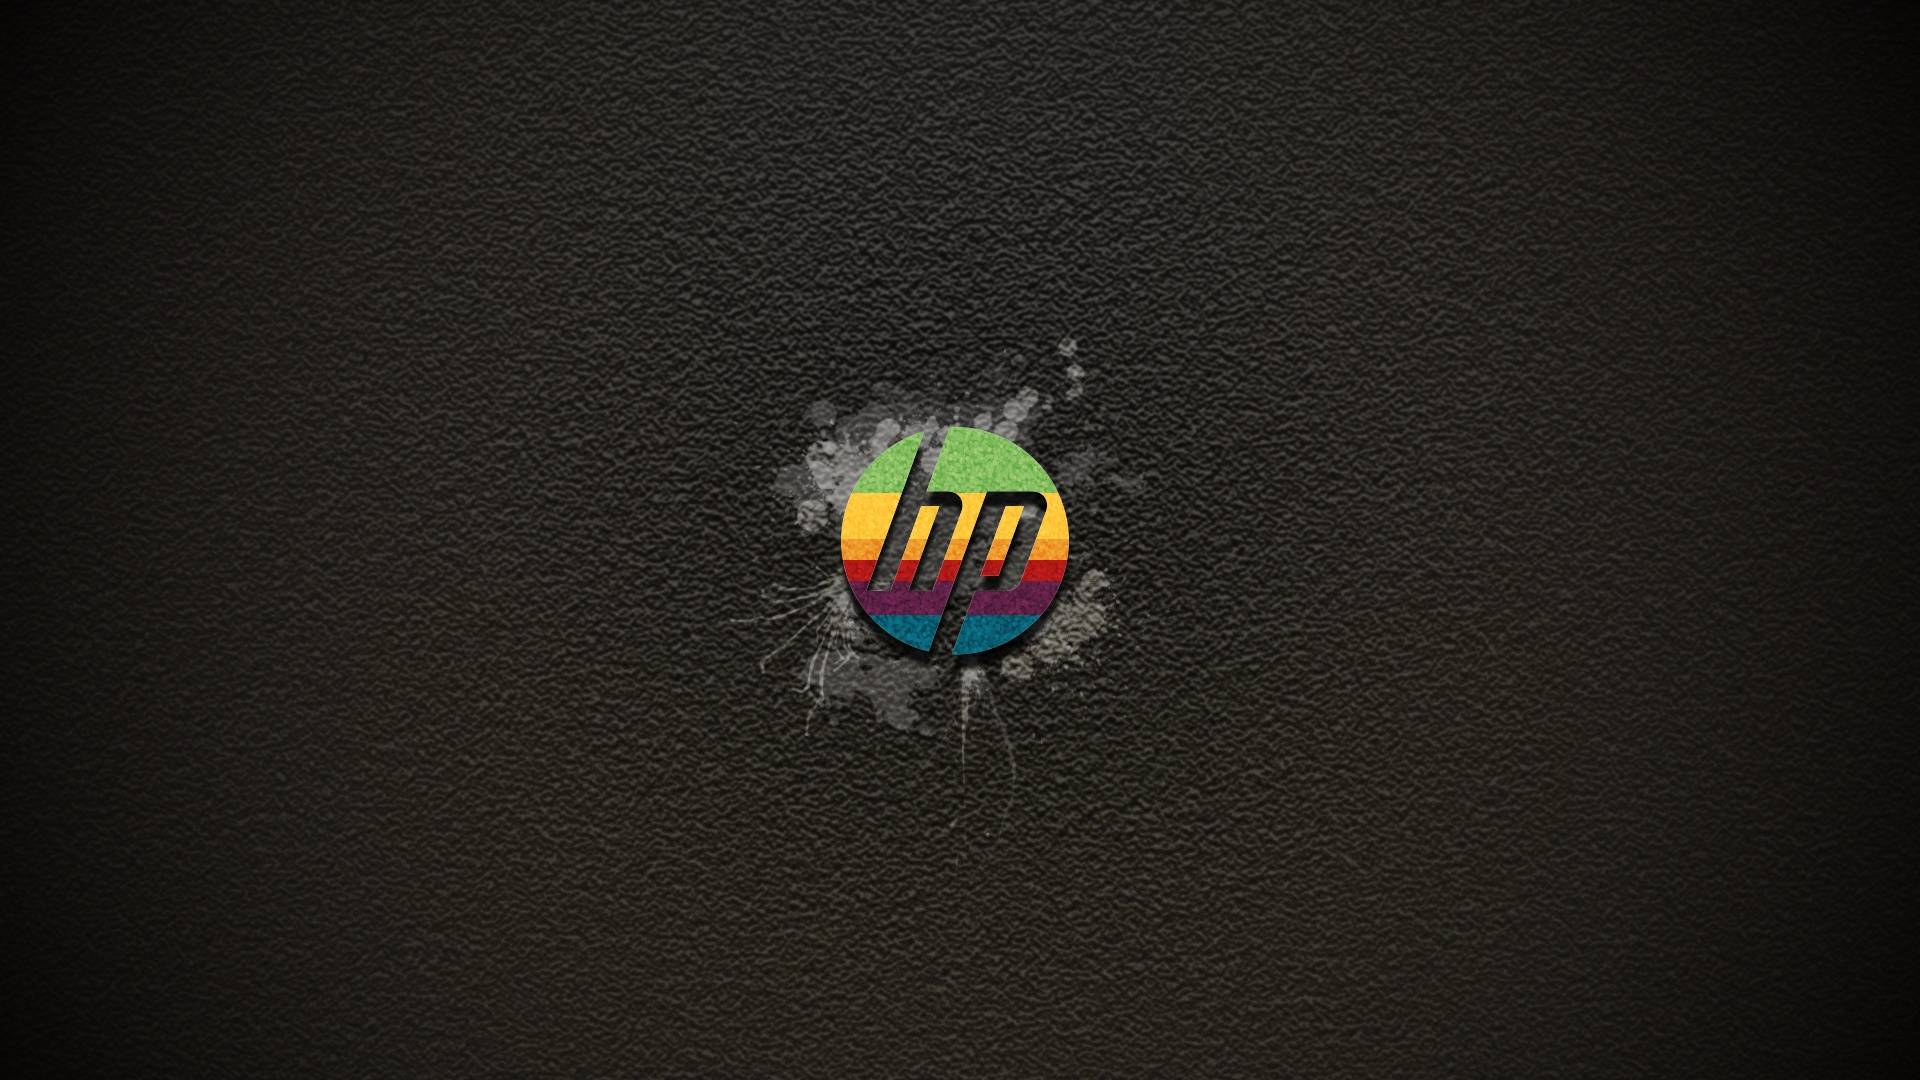 hp wallpapers hd download free pixelstalk hp hd wallpaper widescreen